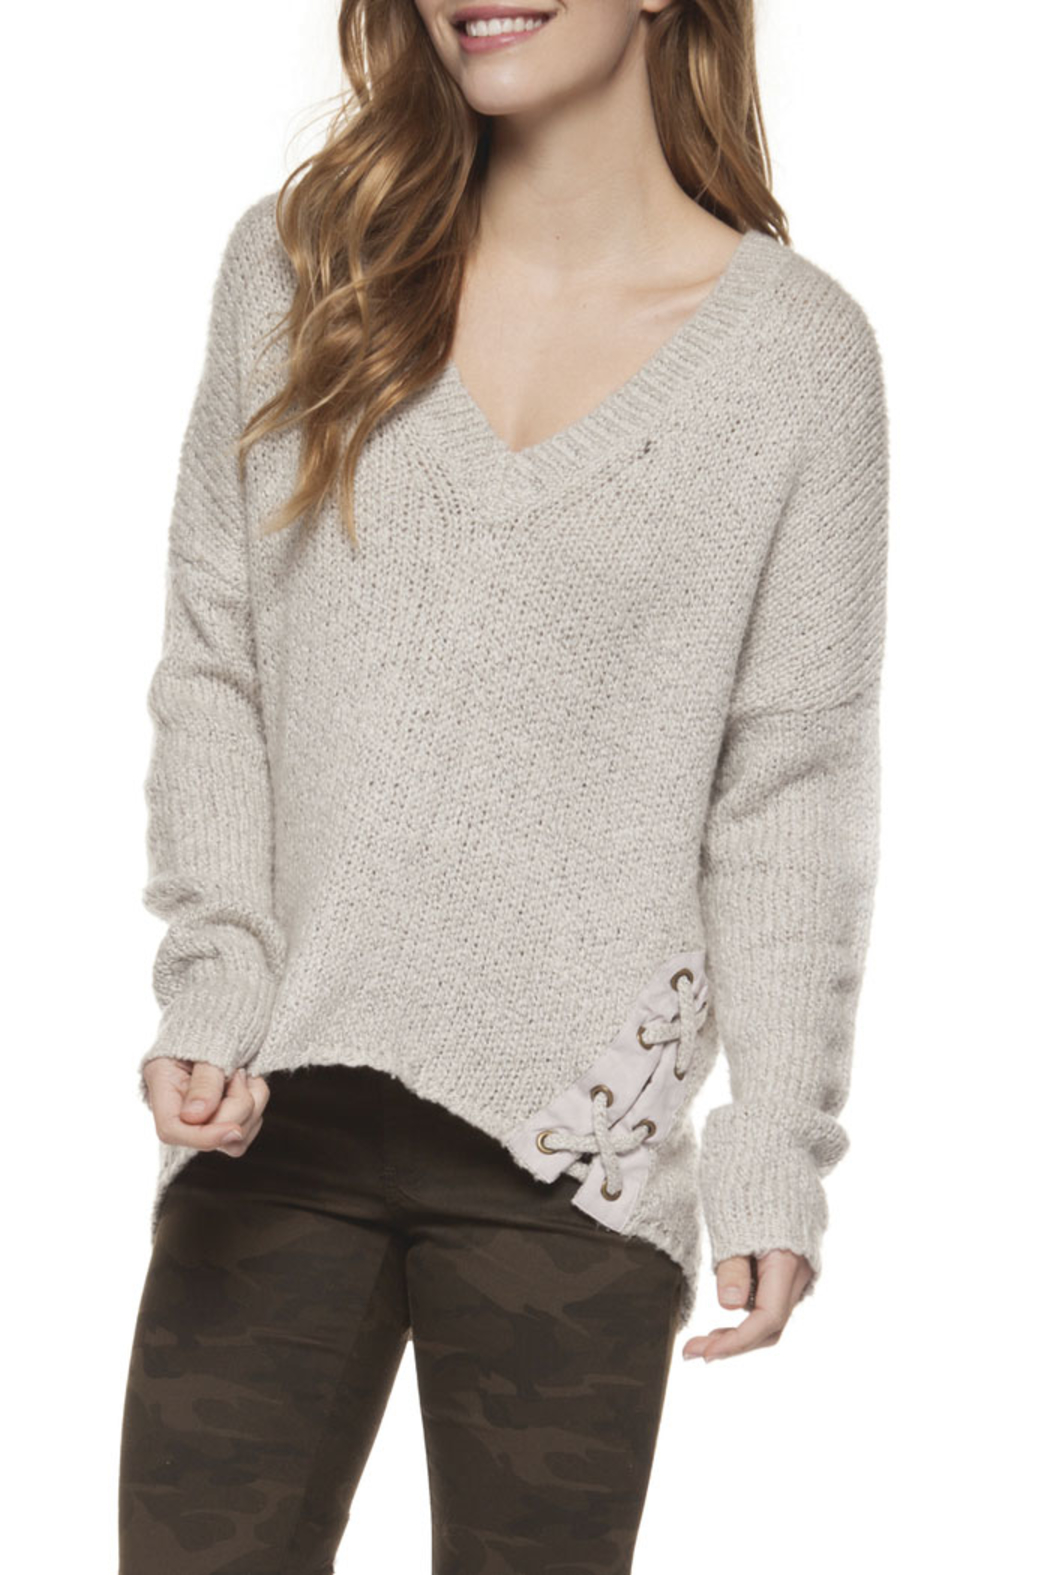 fdbd2197bb Dex Lace Up Eyelet Sweater from New York City by FOR INTERNAL USE ...